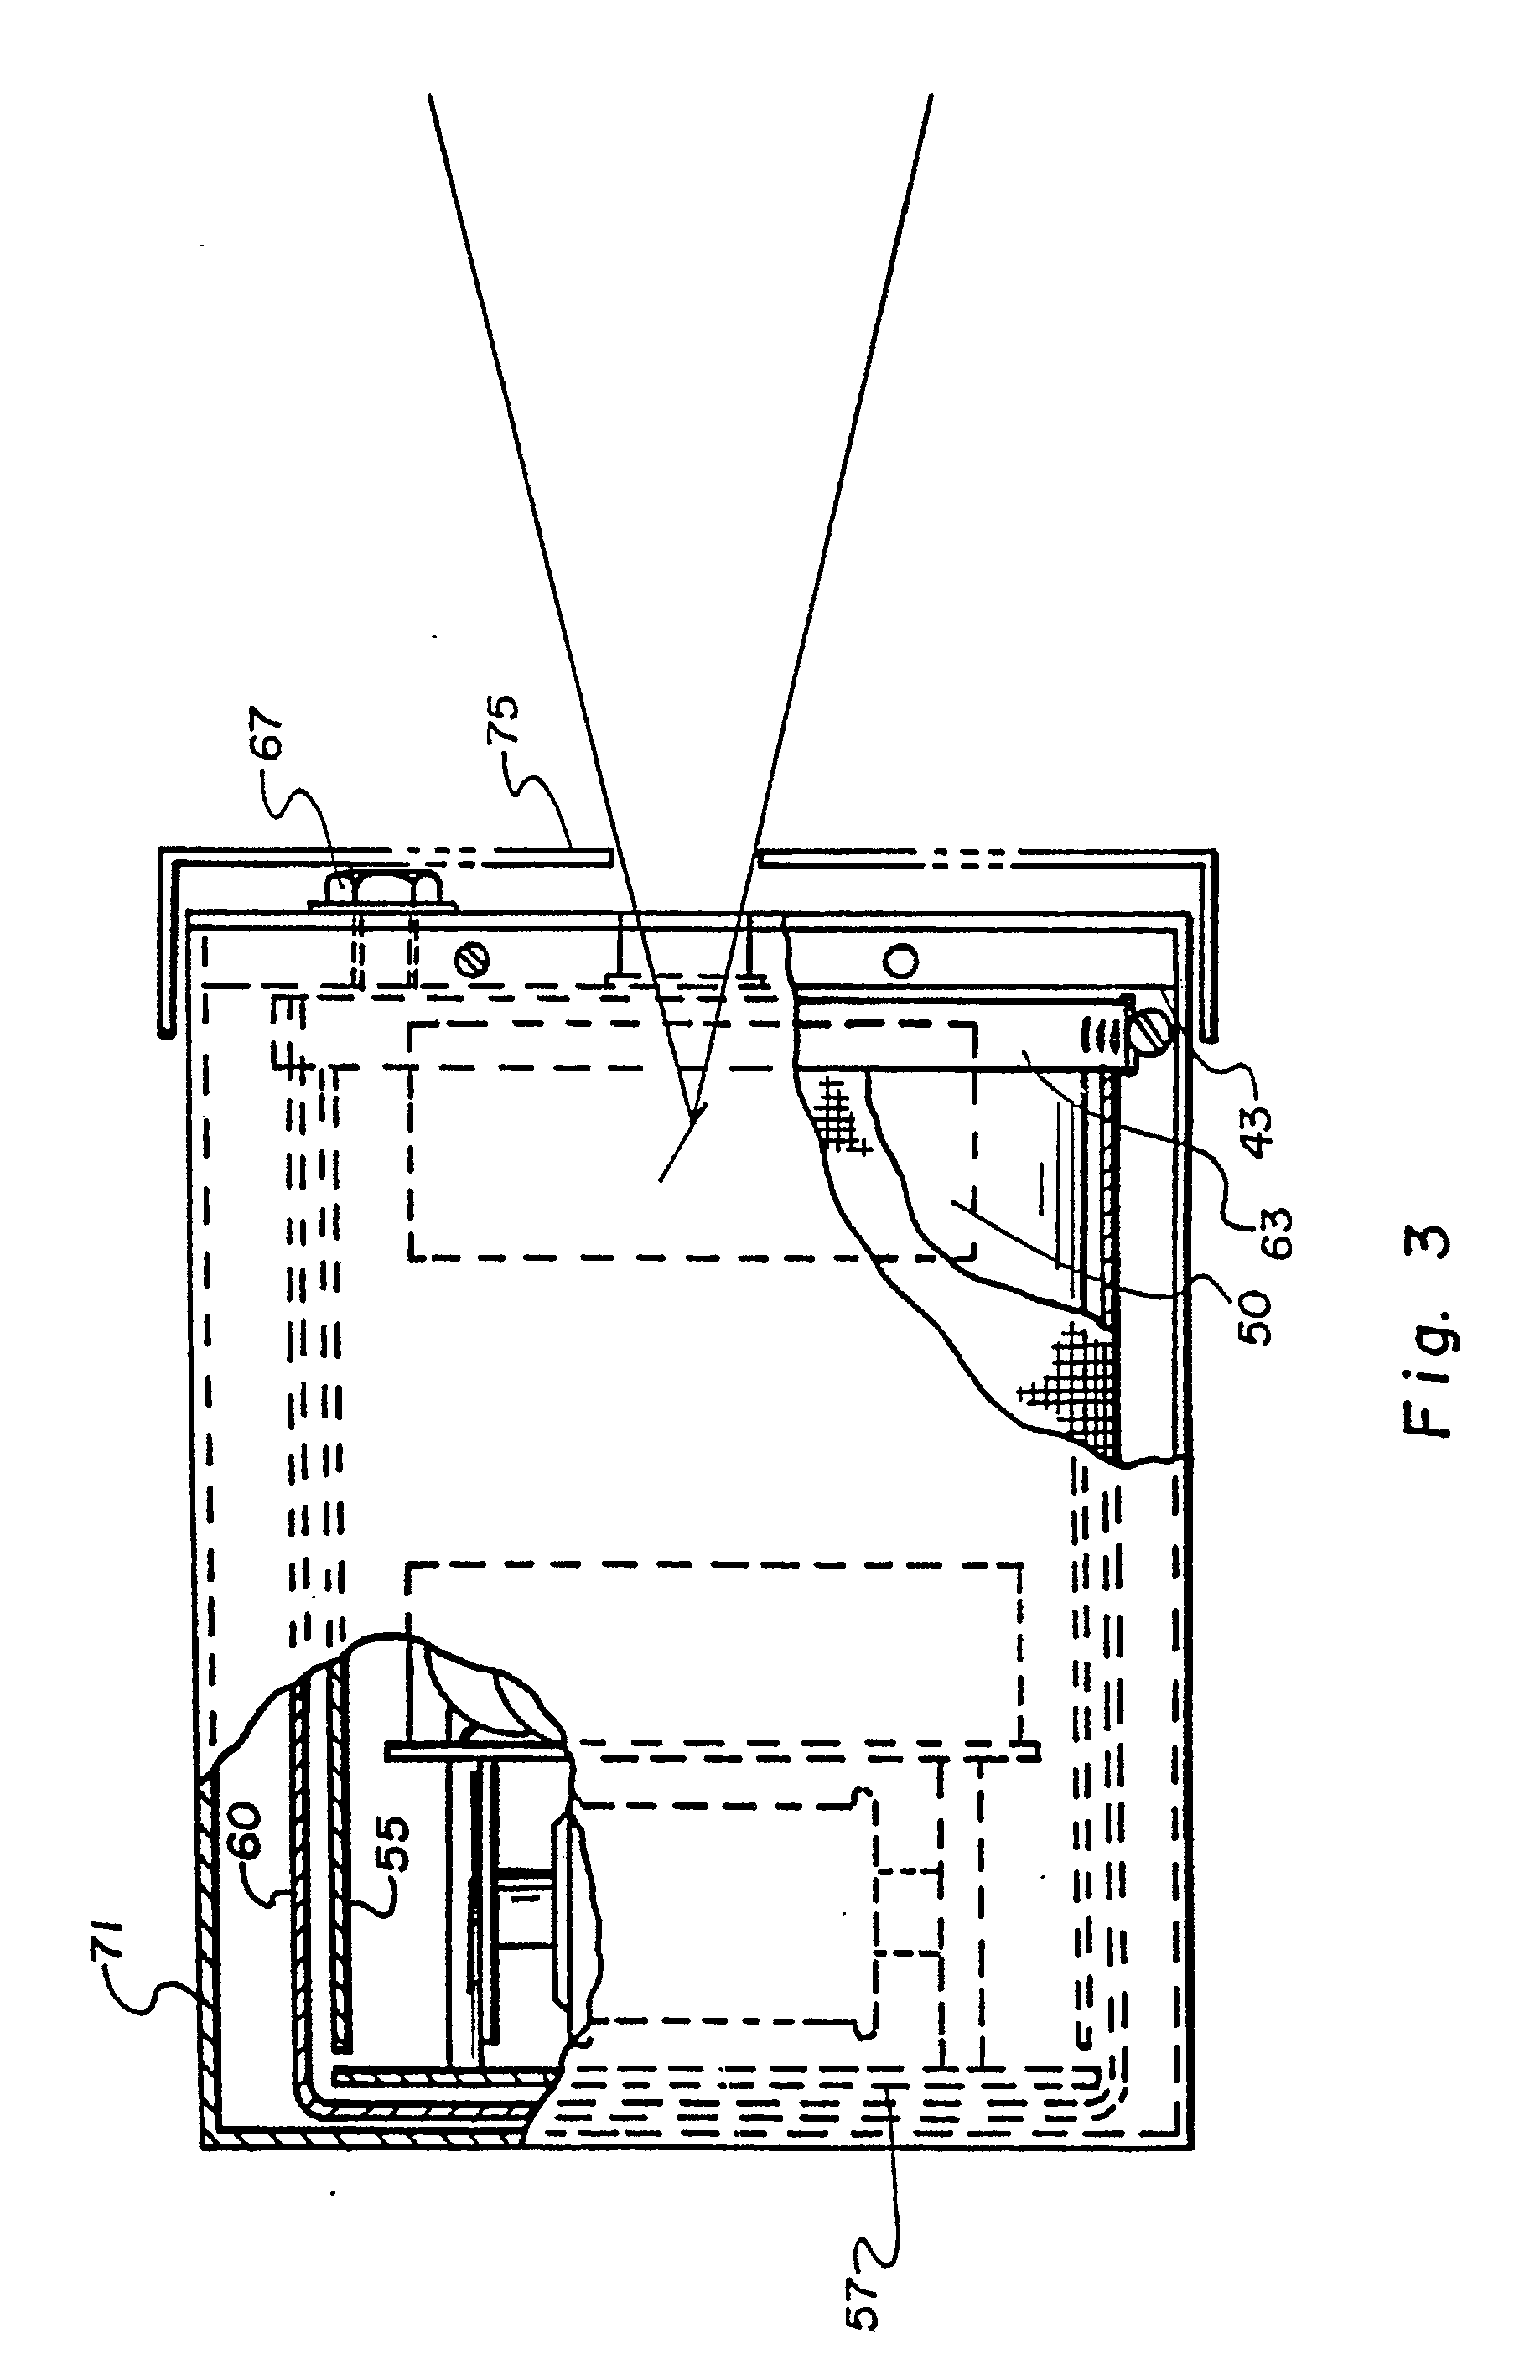 Patent Ep0429075a2 - X-ray Tube Head Assembly